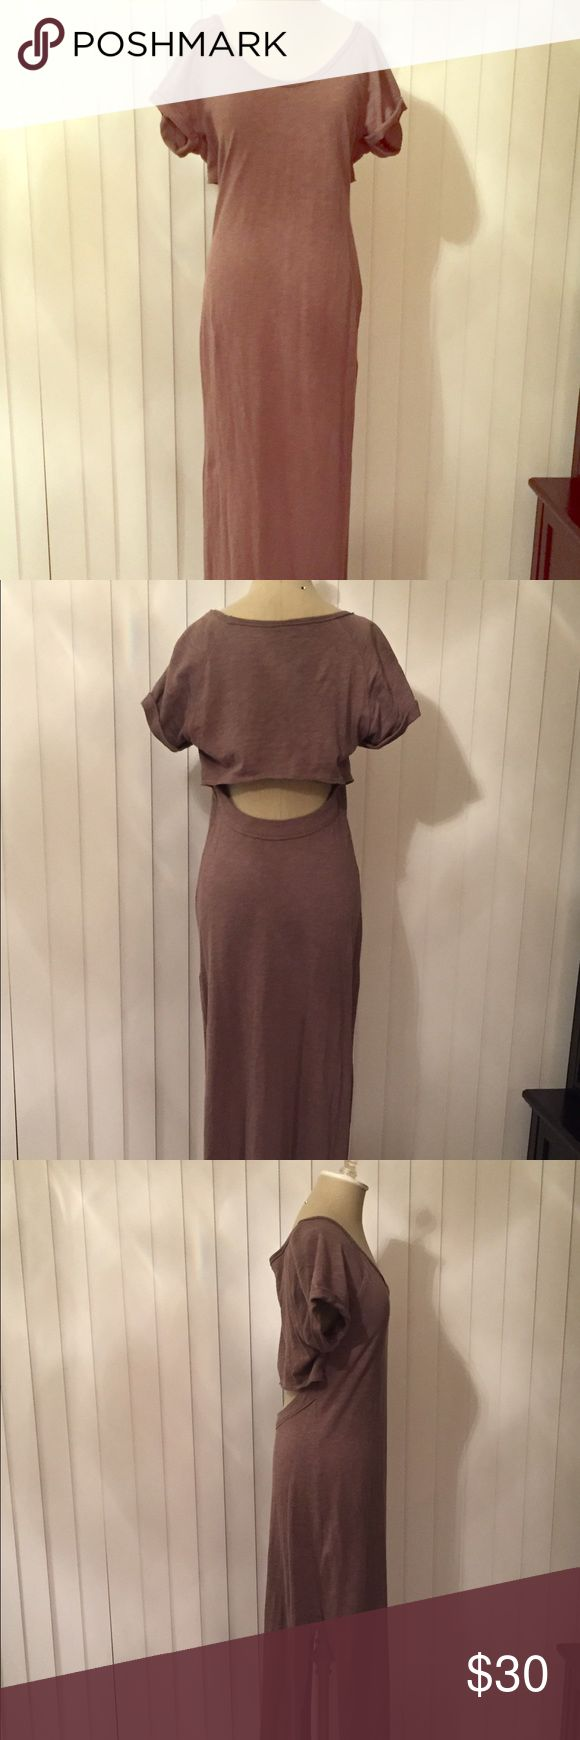 Free people brown maxi dress Very gently used with an awesome open back!! Looks great with flip flops, sandals or wedges. This is 100% cotton. Free People Dresses Maxi